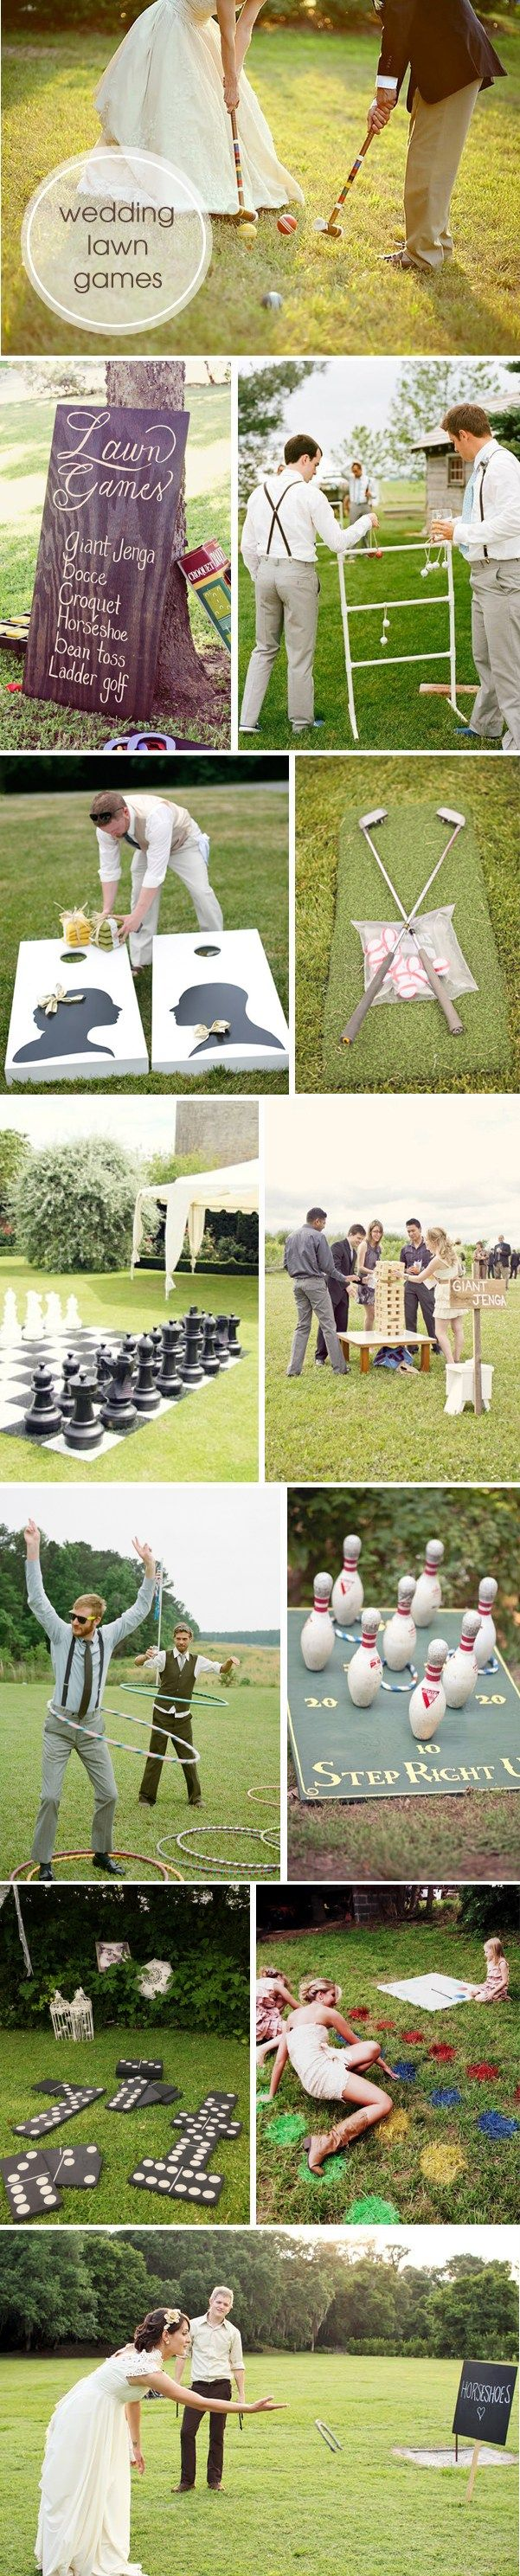 Backyard Wedding Games round-up | lawn games, weddings and wedding